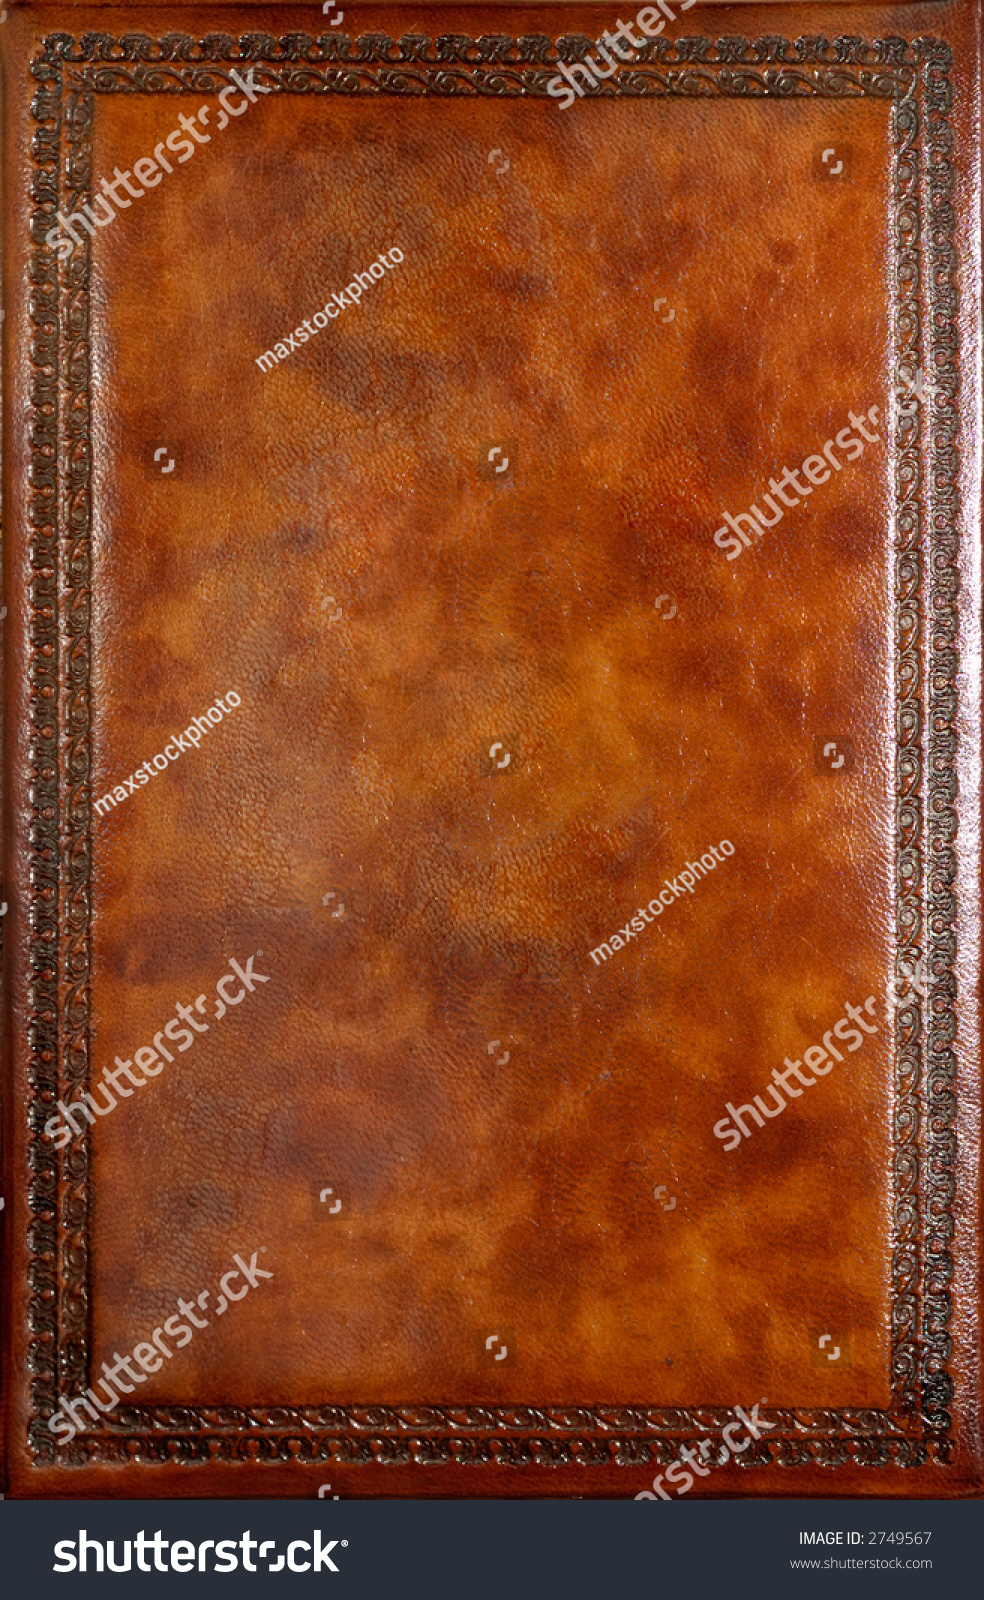 Book Cover Pattern Photo ~ Brown leather book cover with decorative pattern stock